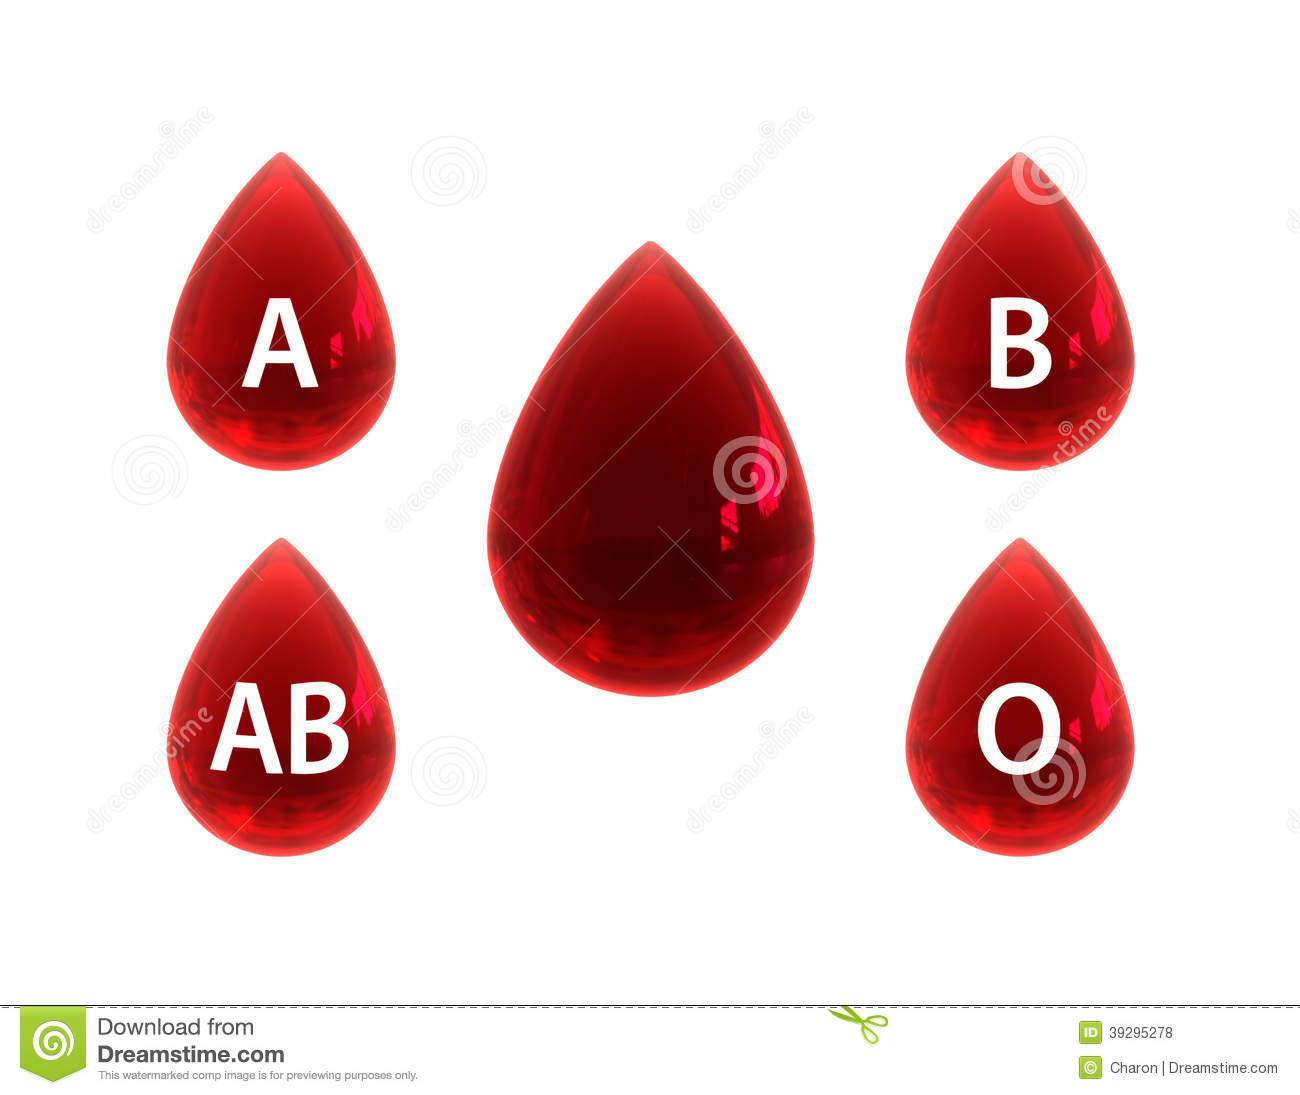 Red Blood Drop Symbol A B Ab O Type Sign Stock Illustration